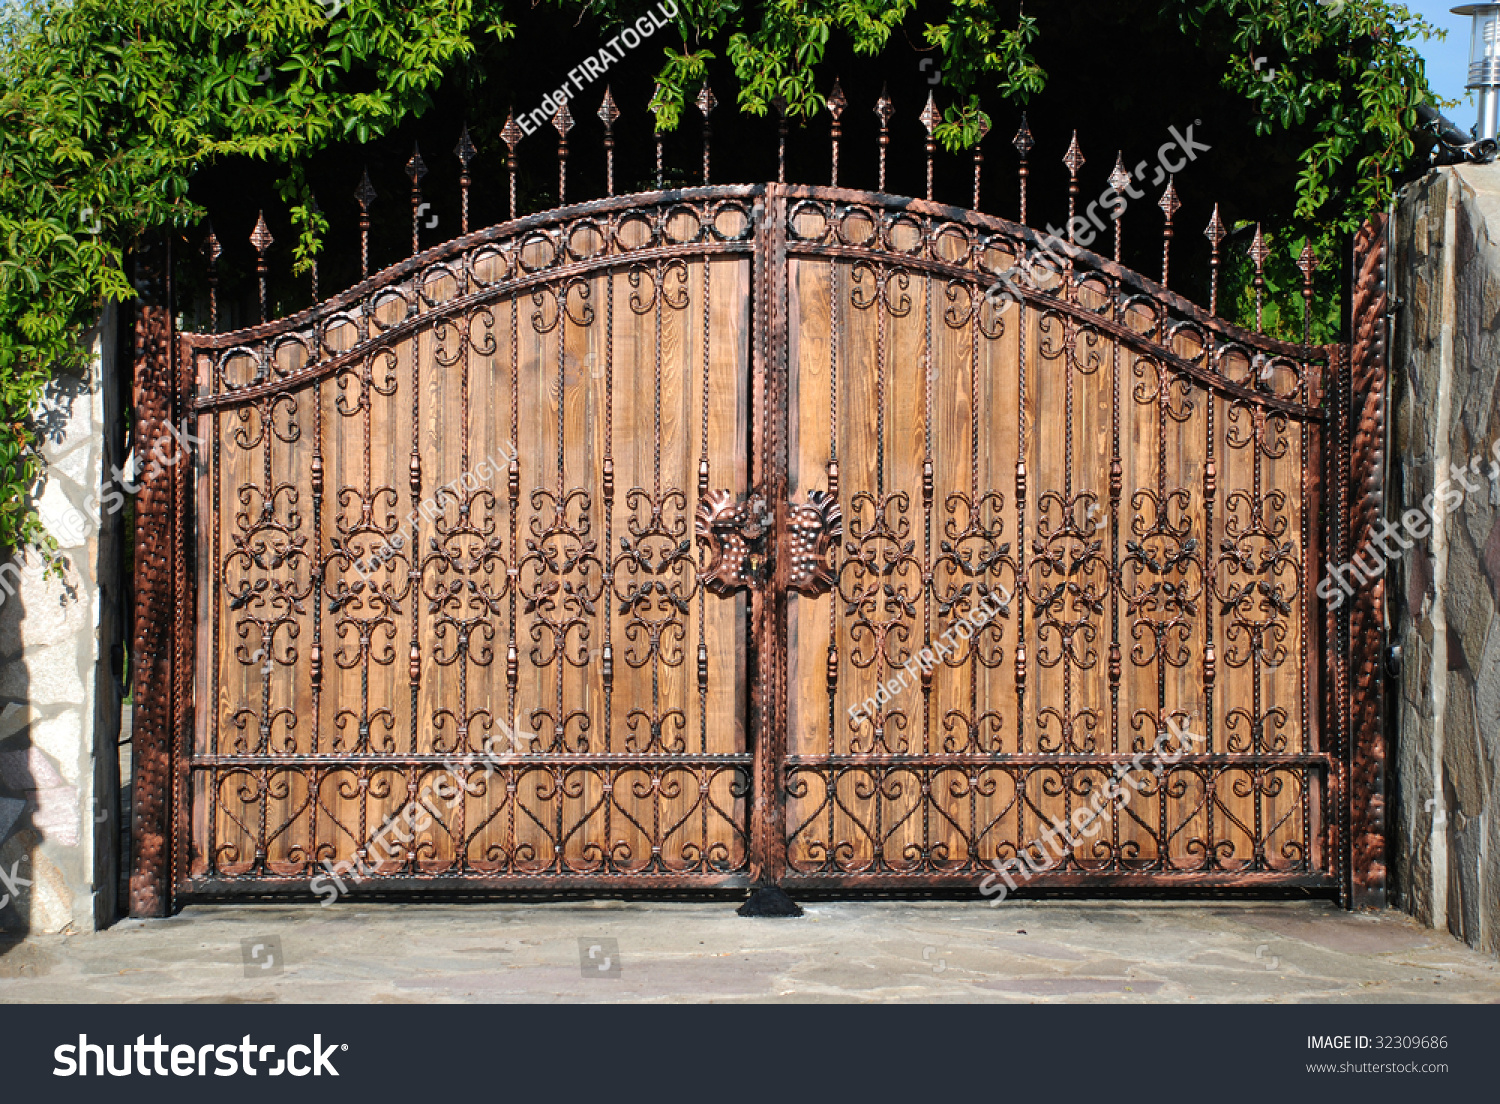 Ornament Forged Big Iron Garden Gate Stock Photo (Edit Now) 32309686 ...